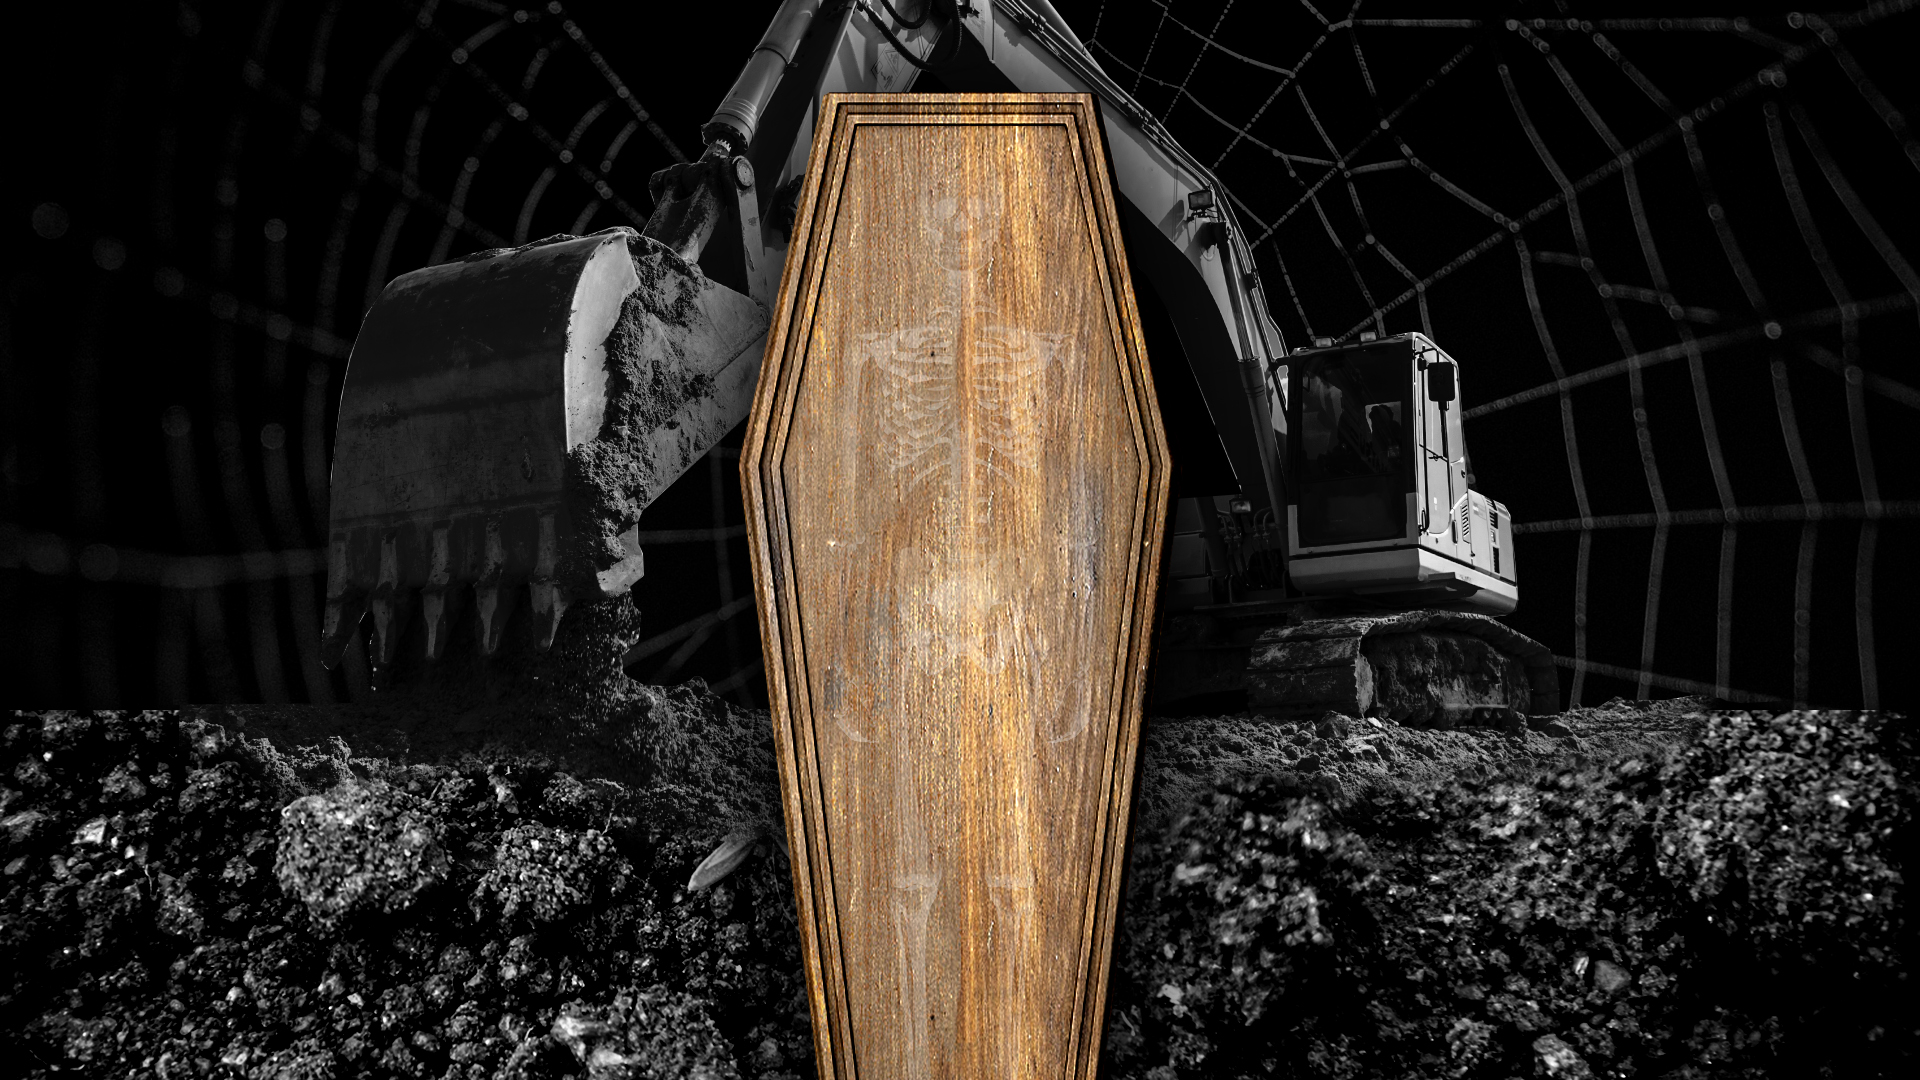 A wooden coffin surrounded by a dark scene of a backhoe digging up dirt.